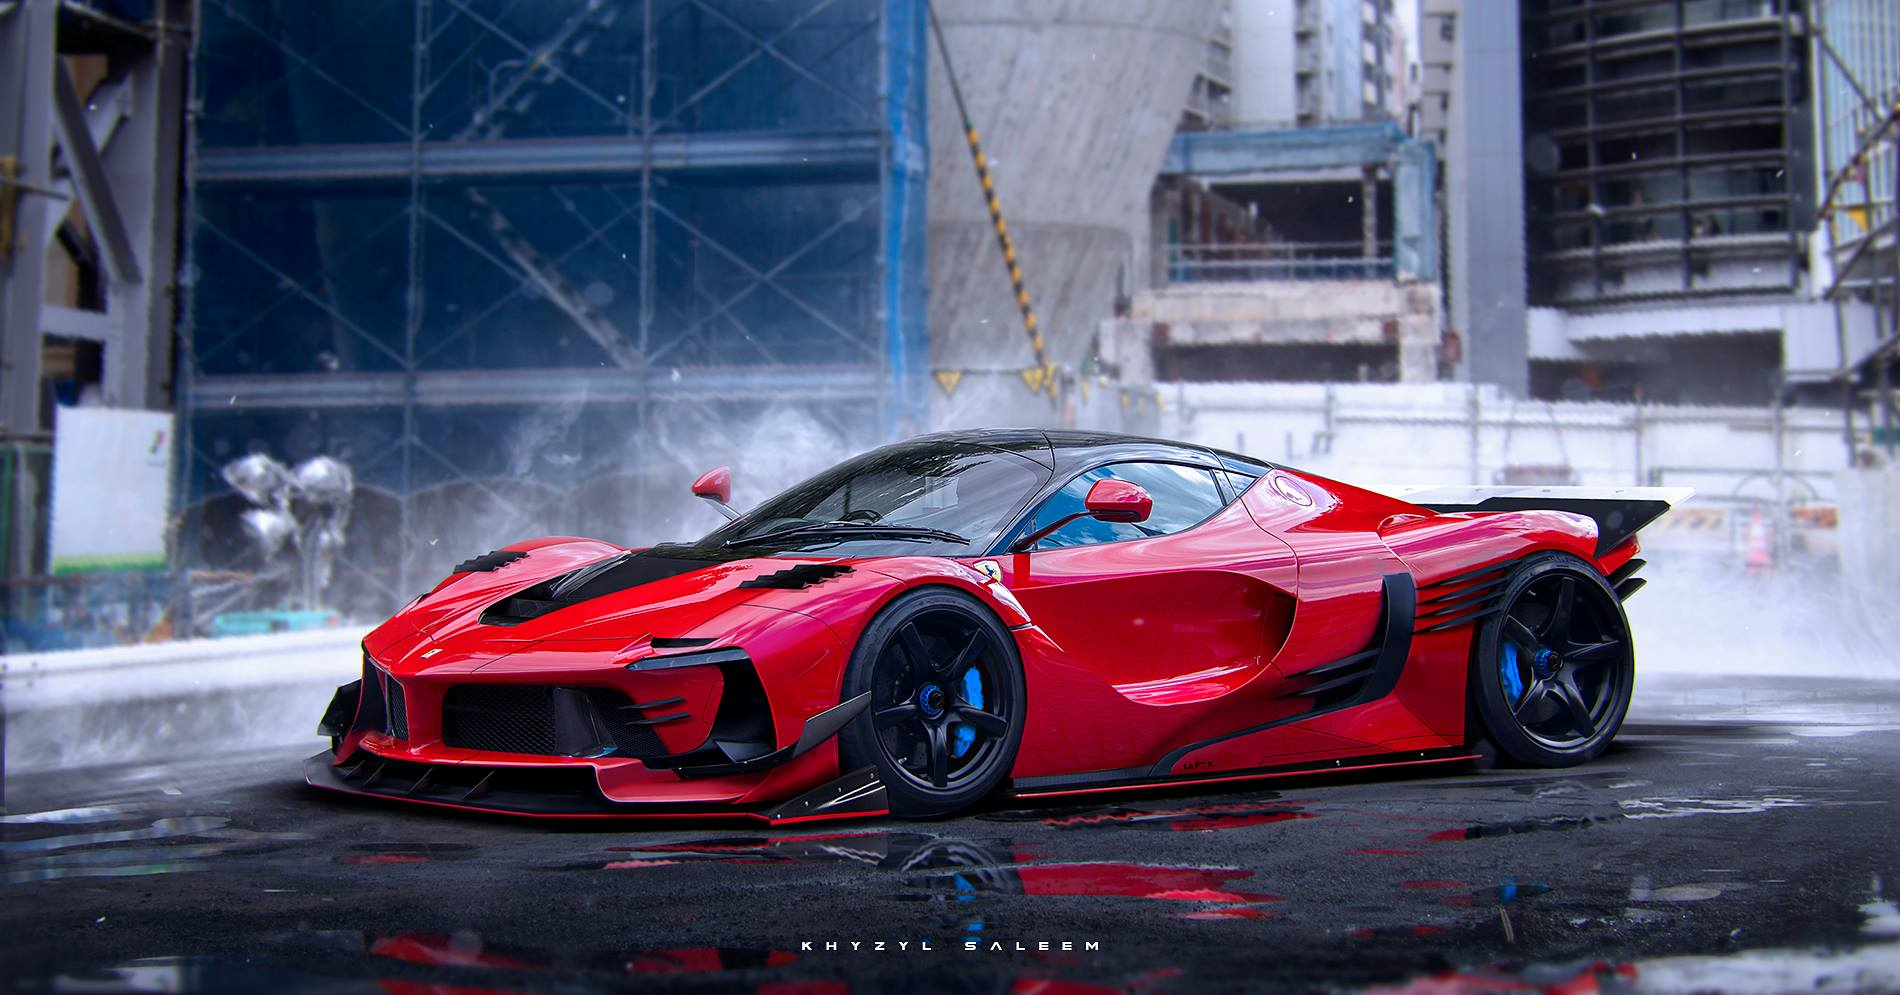 New Mitsubishi 3000gt >> Ferrari LaFerrari FXXK with a twist! | StanceNation™ // Form > Function